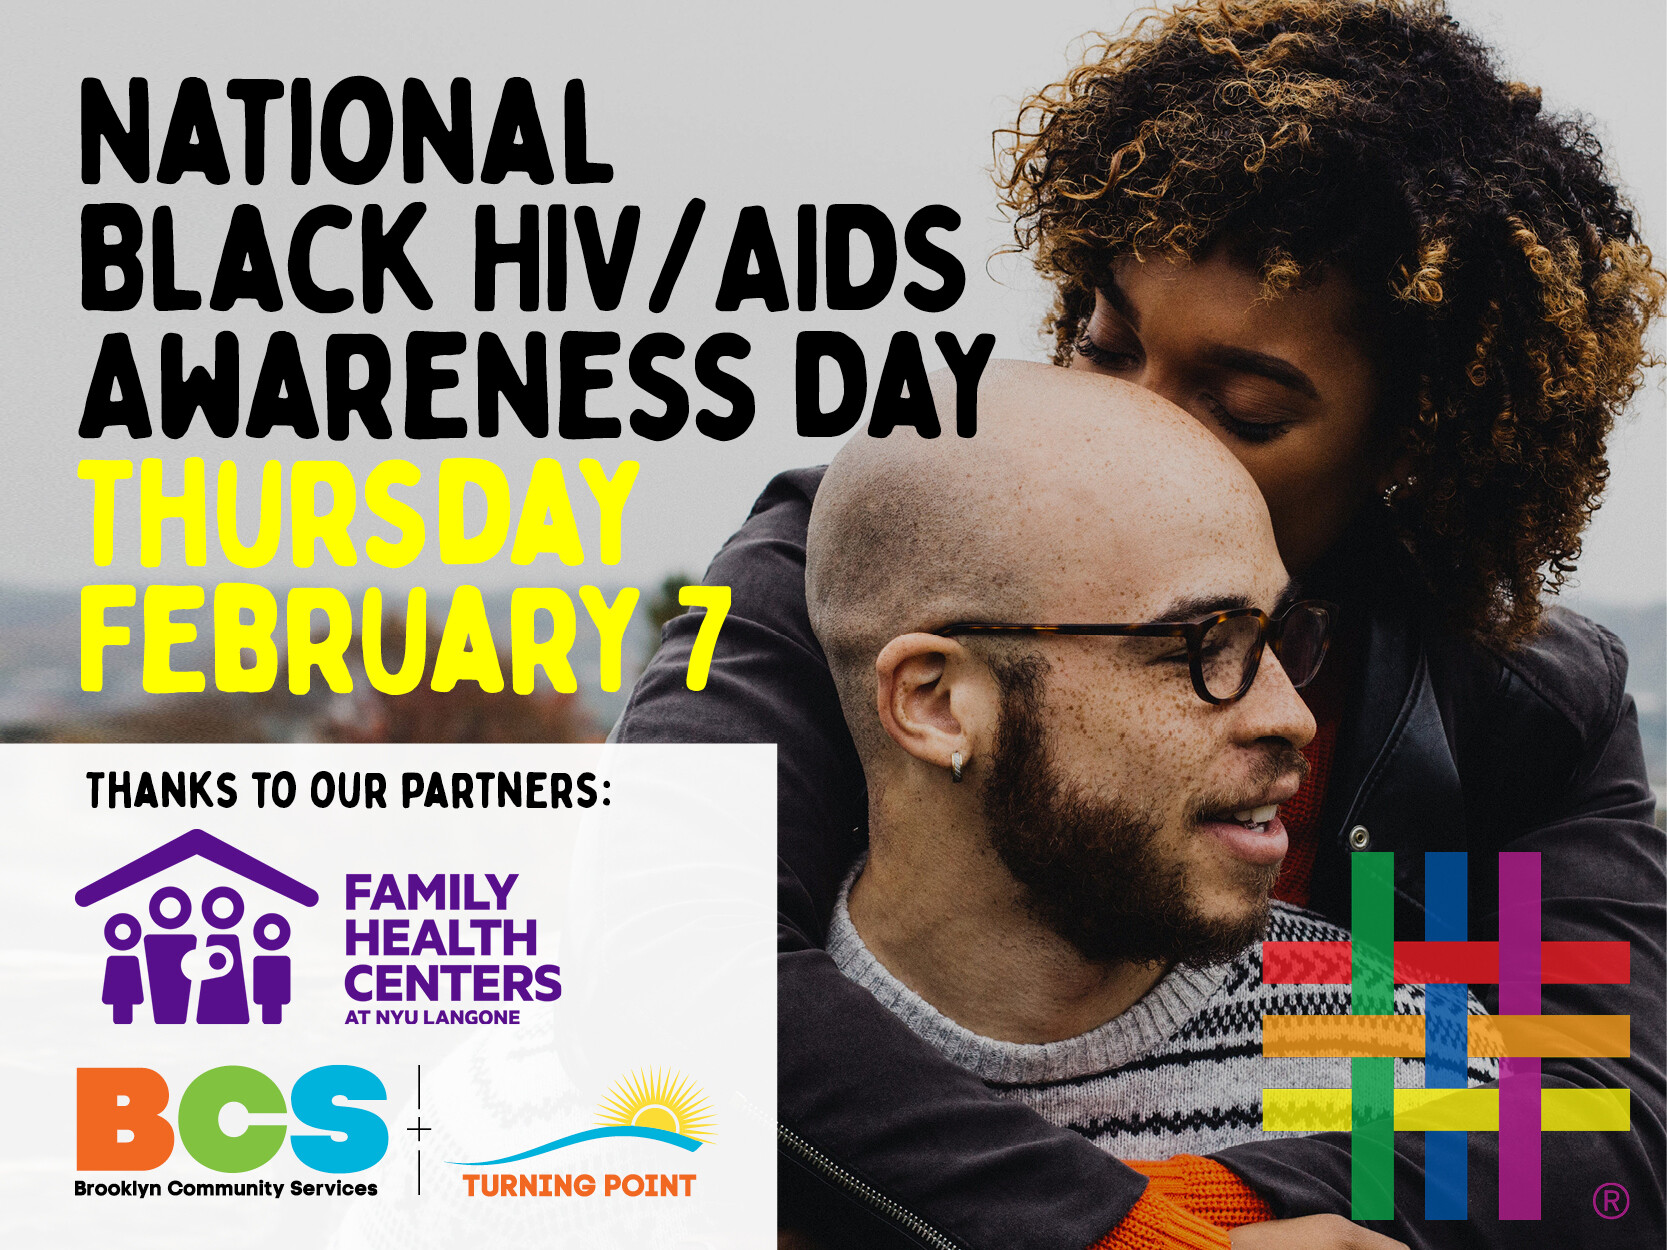 National Black HIV AIDS Awareness Day